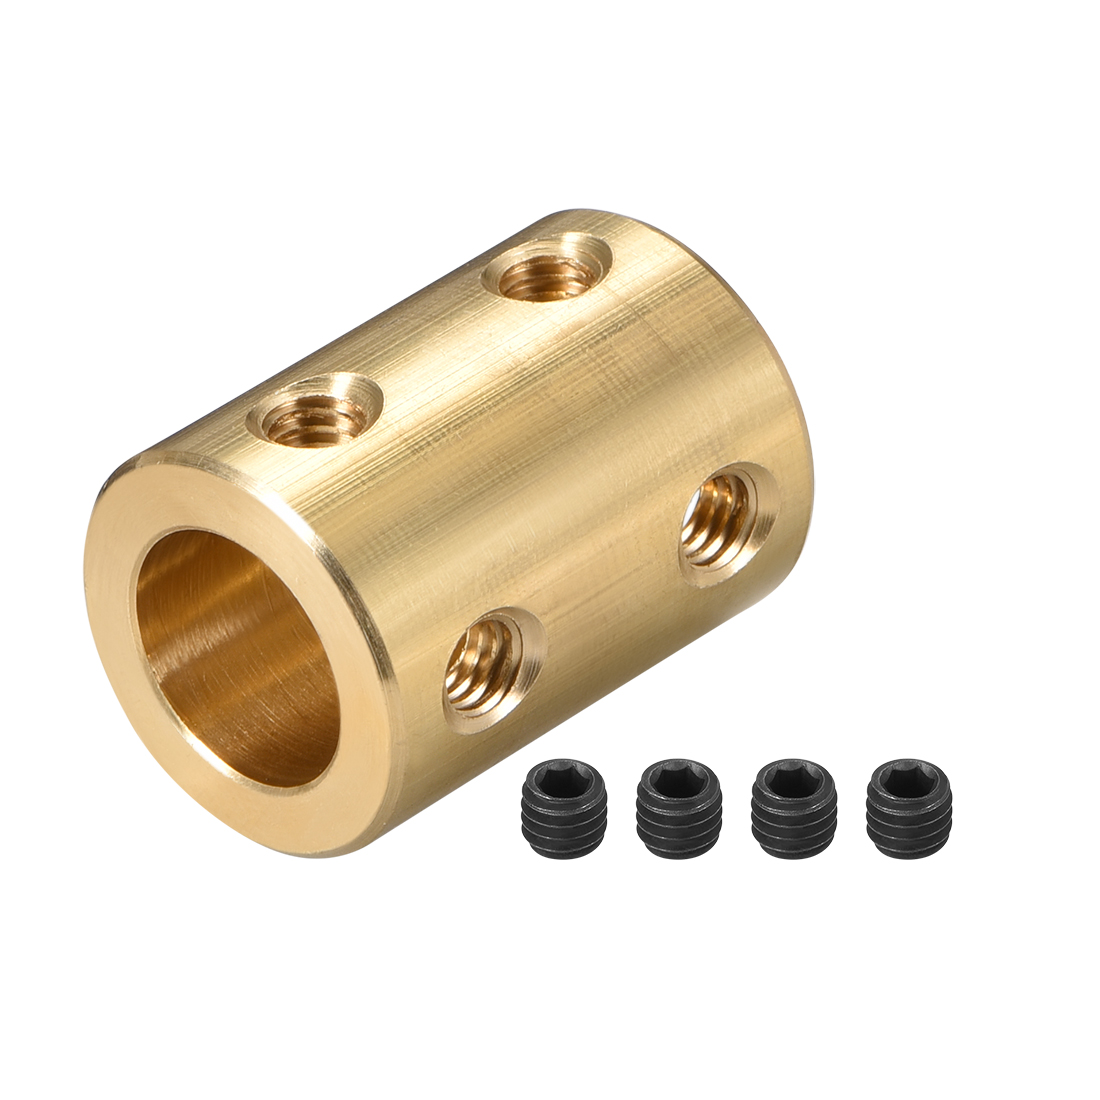 Shaft Coupling 8mm to 10mm L22xD16 Robot Motor Wheel Rigid Coupler Gold Tone